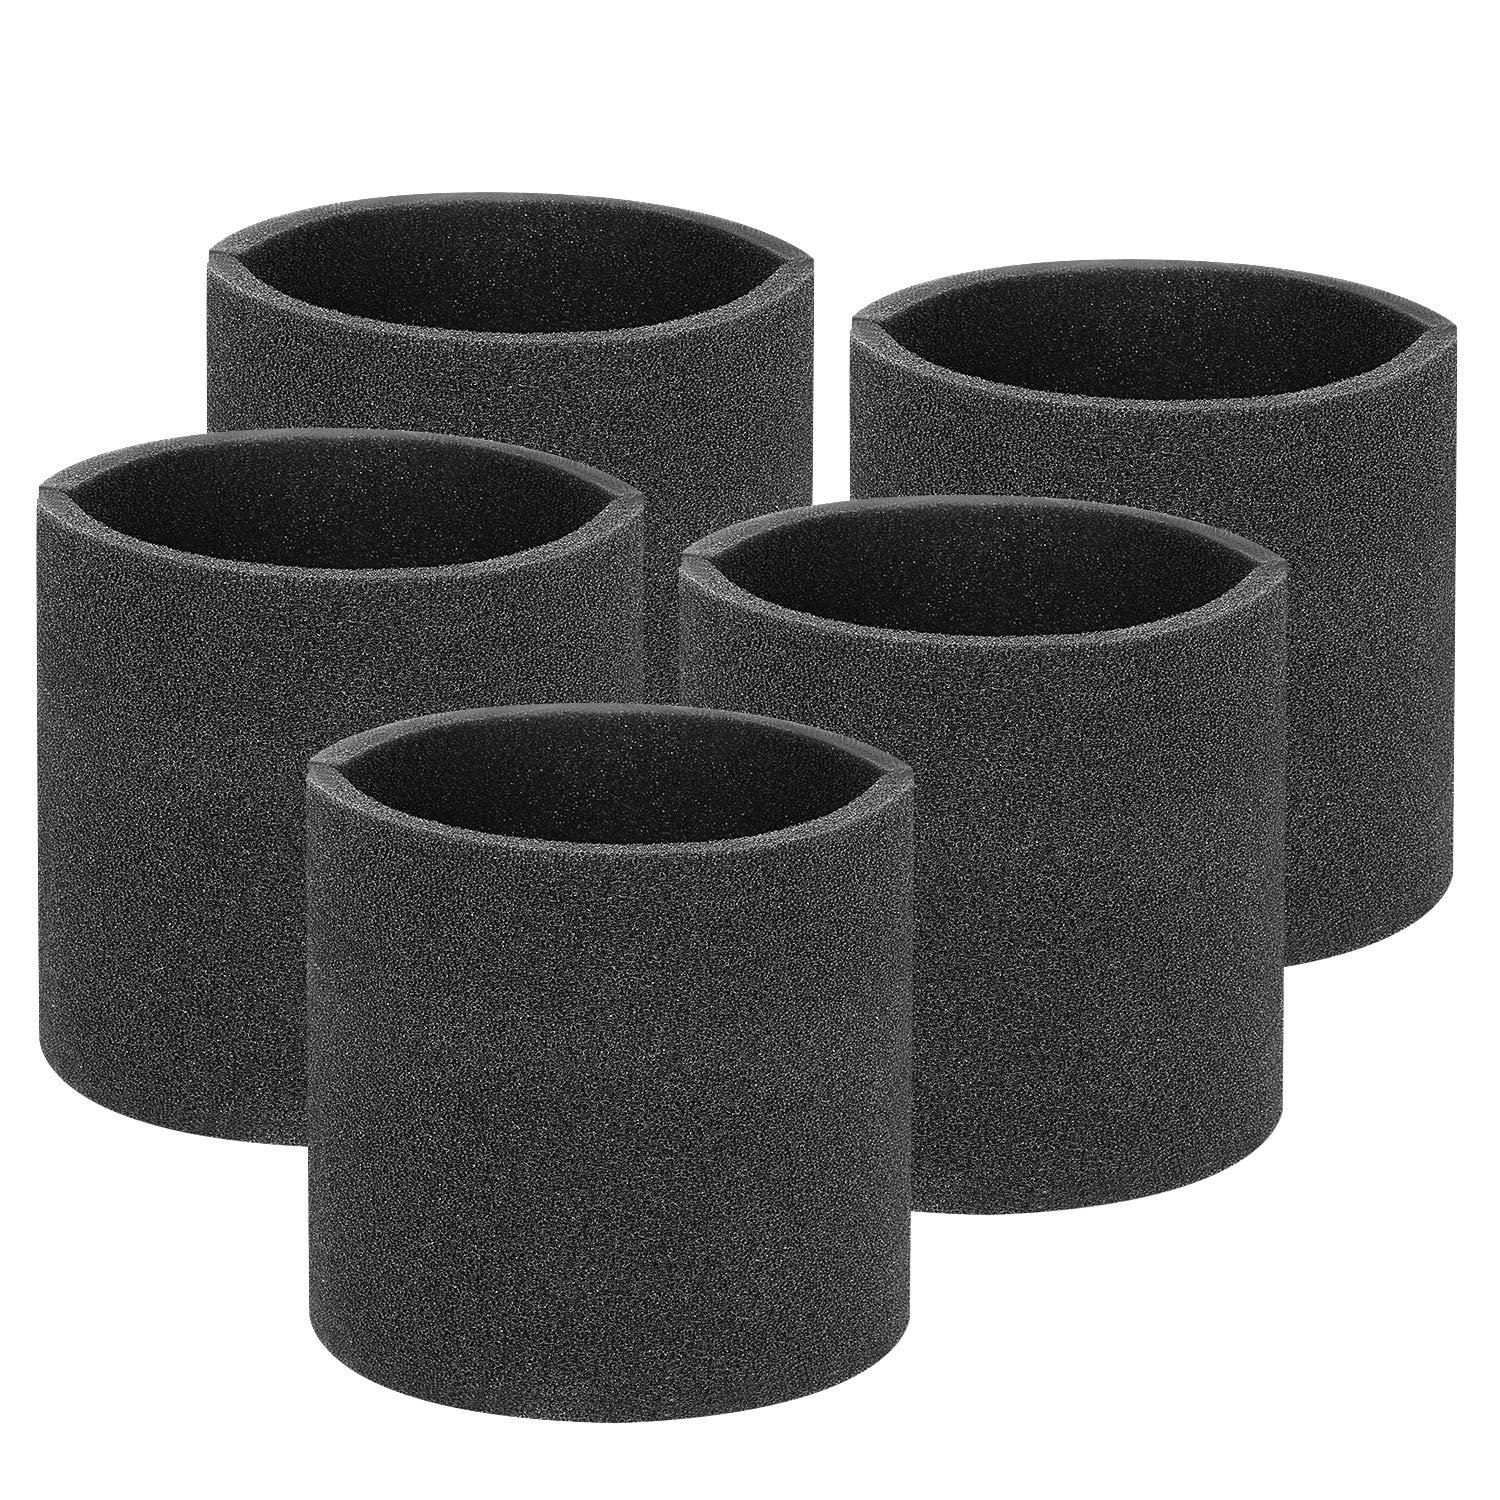 Isingo 5 Pack Foam Sleeve Filter Compatible Most Shop-Vac Brand Wet Dry Vacuums 5 Gallon and Above, Compare to Part # 90585 & 9058500 Type R by Isingo